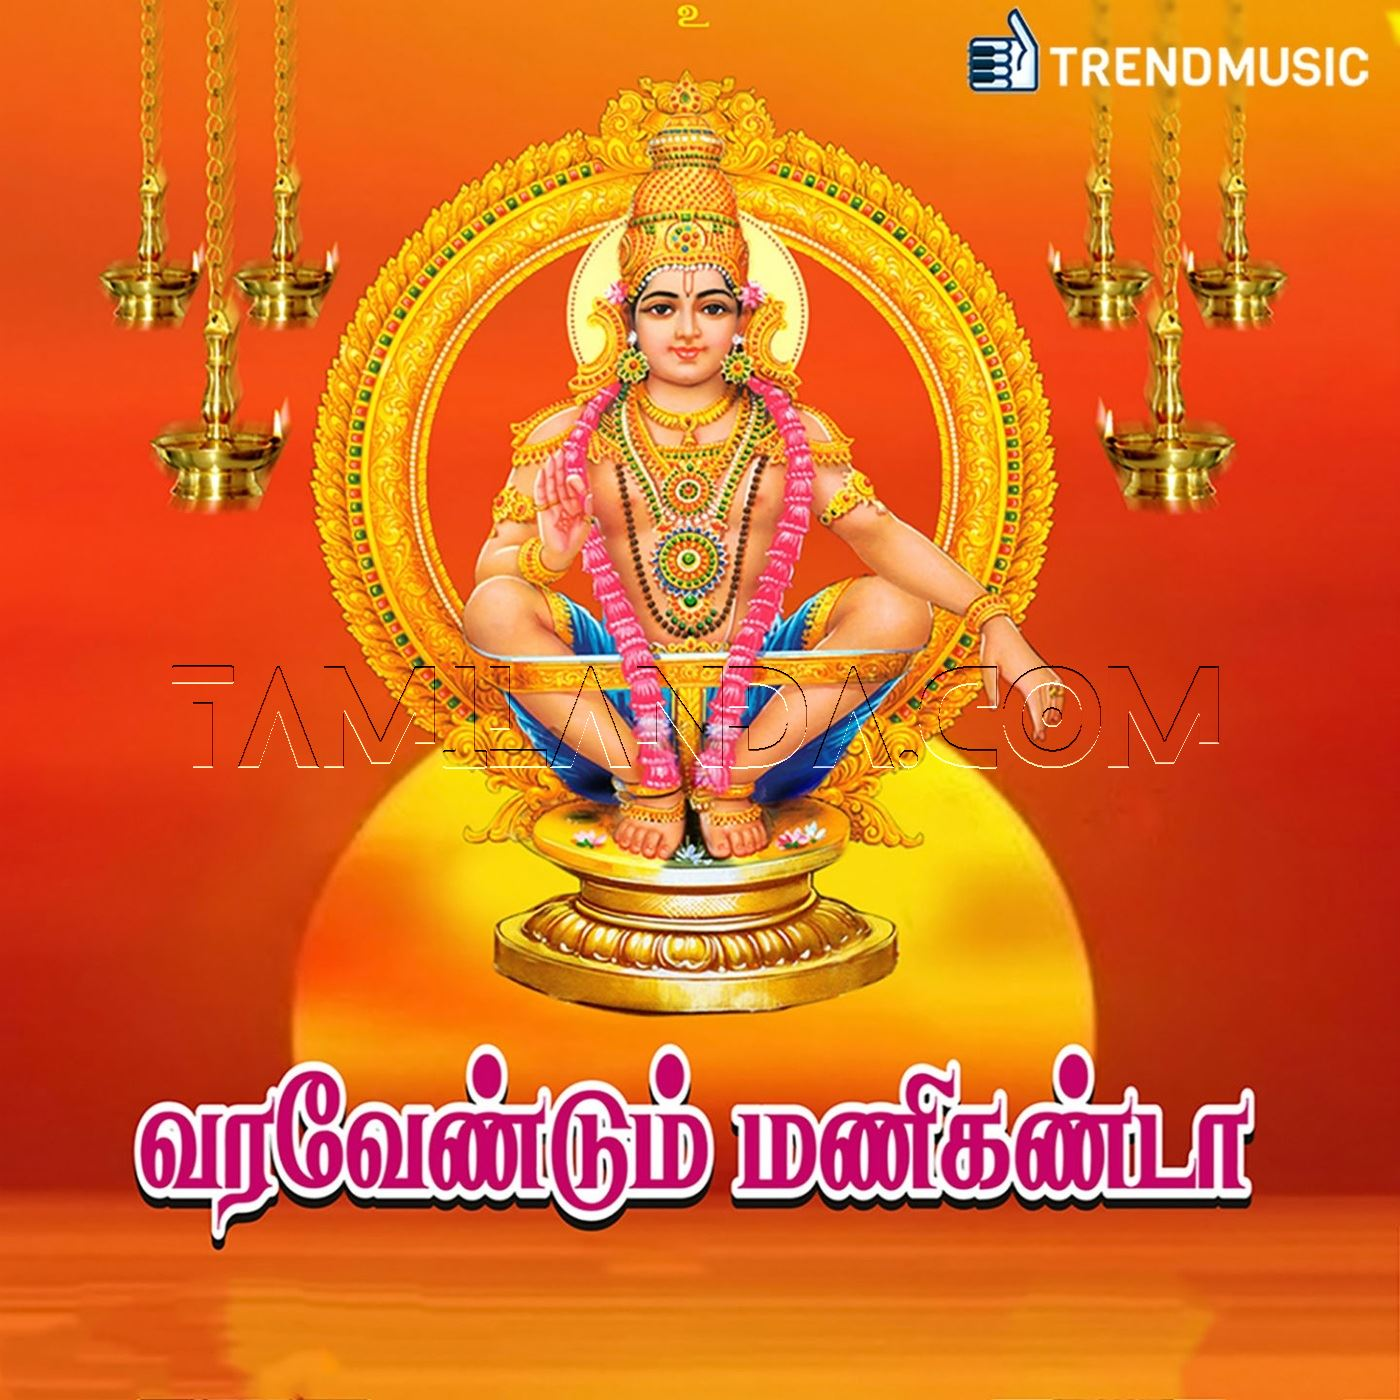 Varavendum Manikanda Devotional FLAC Songs